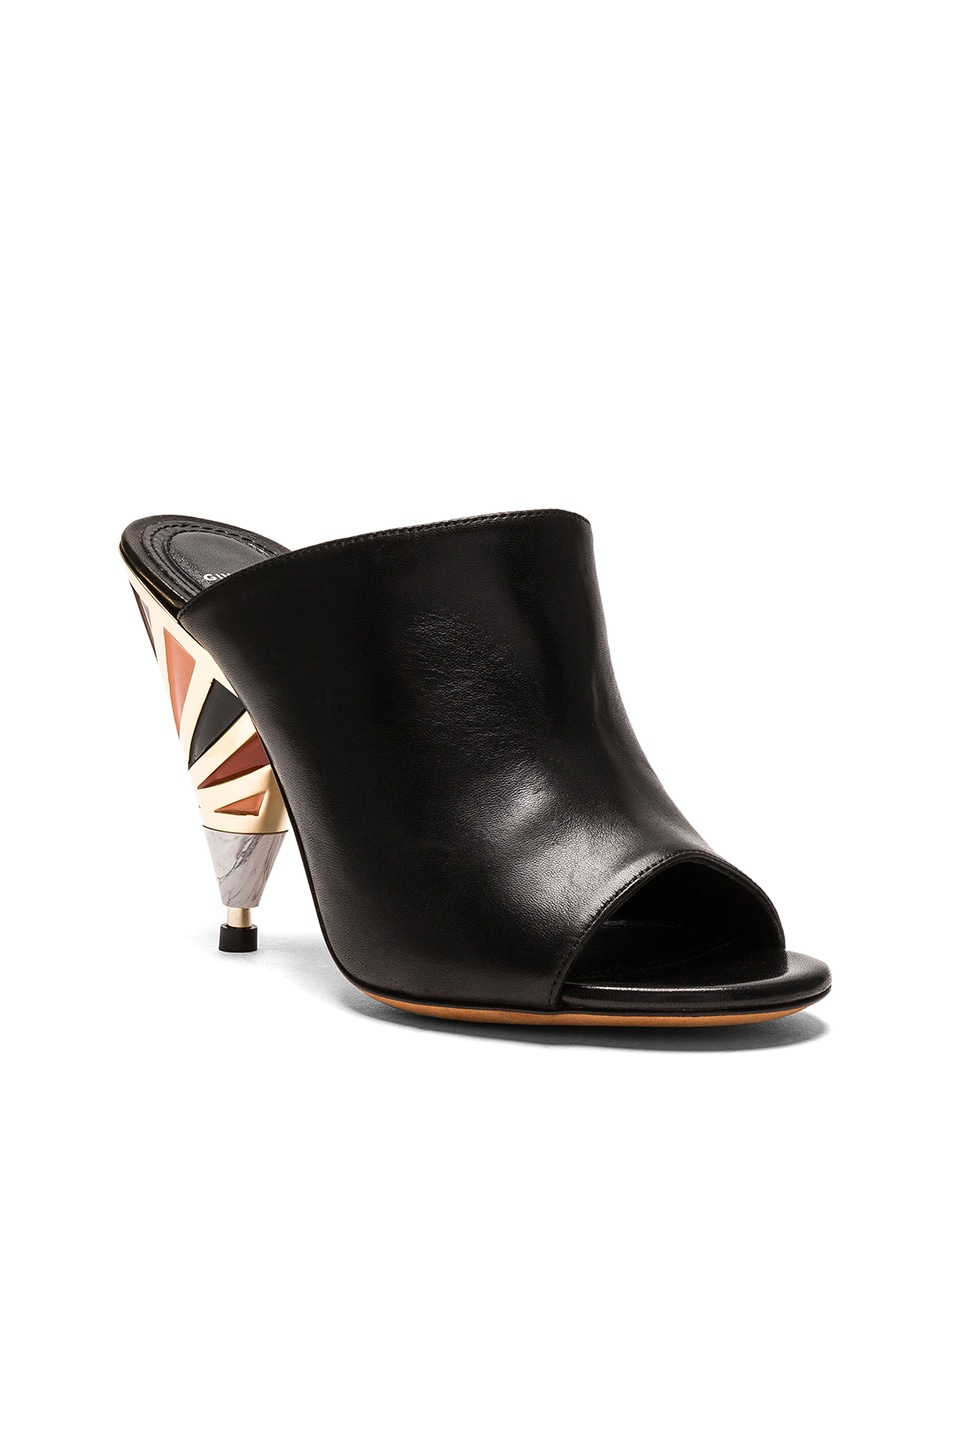 Image 2 of Givenchy Leather Multicolor Heel Mules in Black